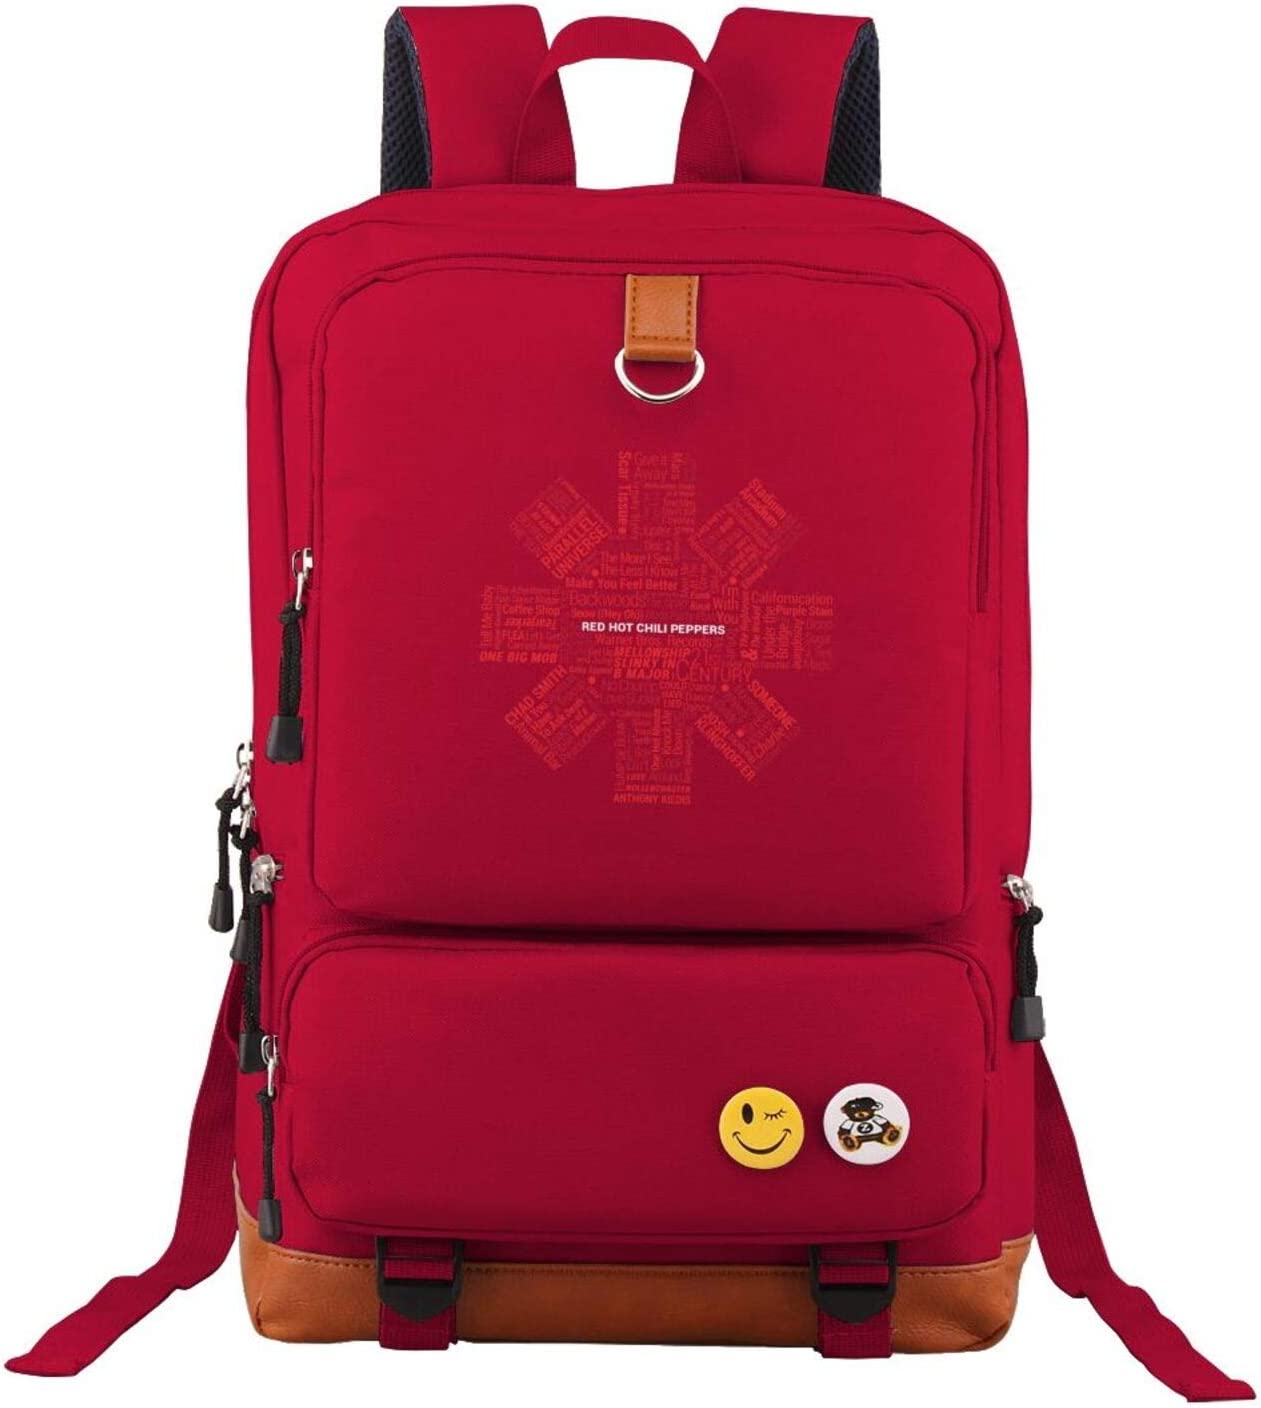 Red Unisex Red Hot Chili Peppers Backpack Vintage Laptop Backpack Anti-Theft Water Resistant Bag Casual Work Backpack